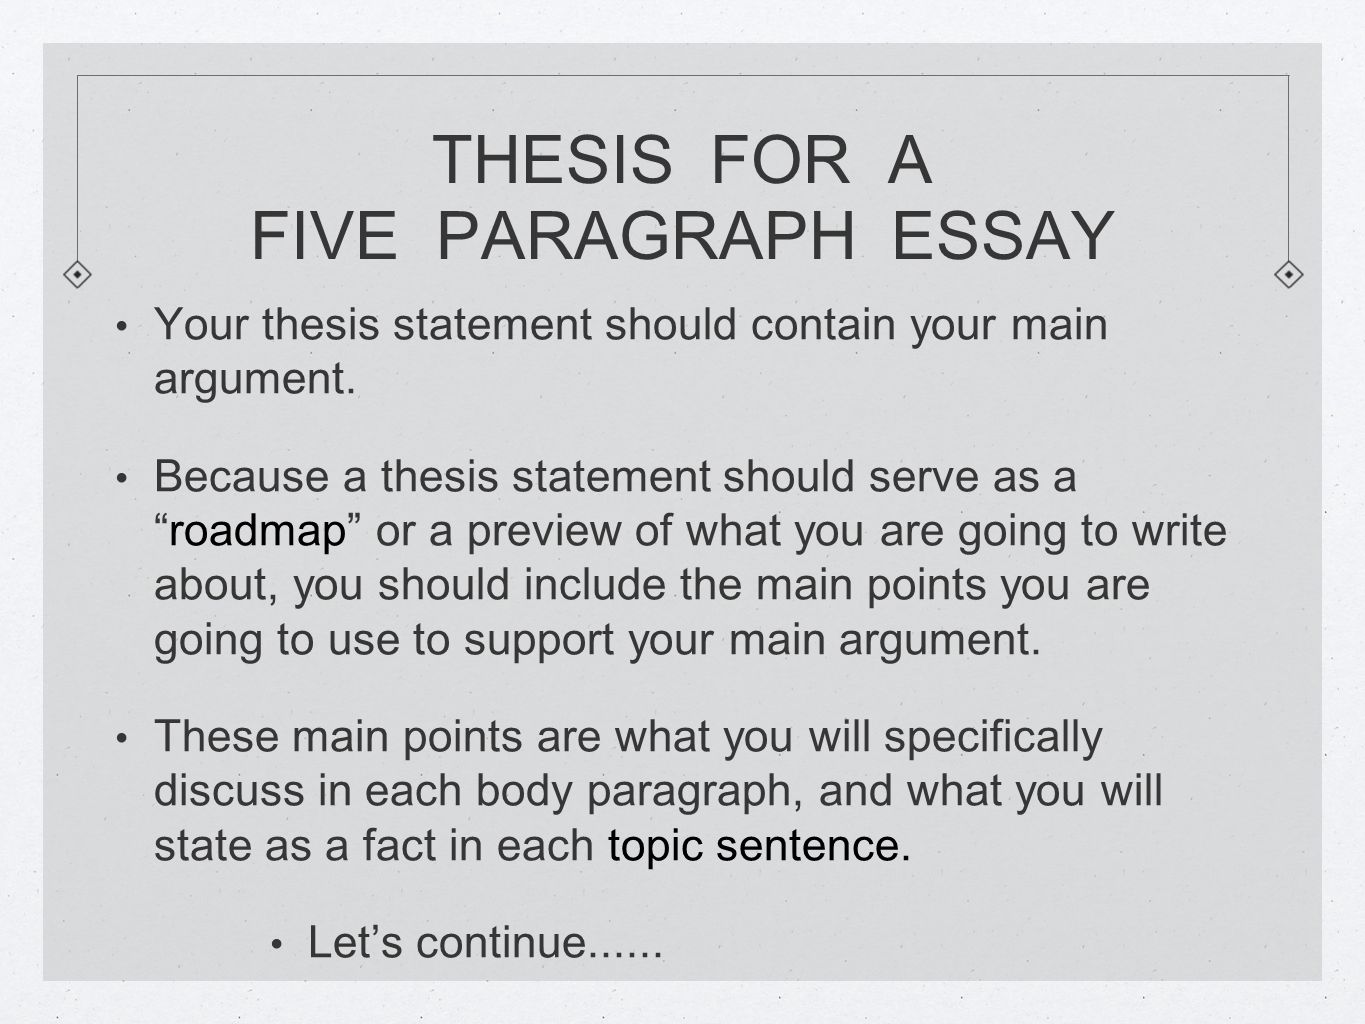 thesis chieftancy Free help homework economics assignment home my with help want jstore africa dissertation chieftaincy marketing in phd for thesis english in writers women century twentieth on essays voices diverse outline sentence apa jstore africa dissertation chieftaincy help essay science political.